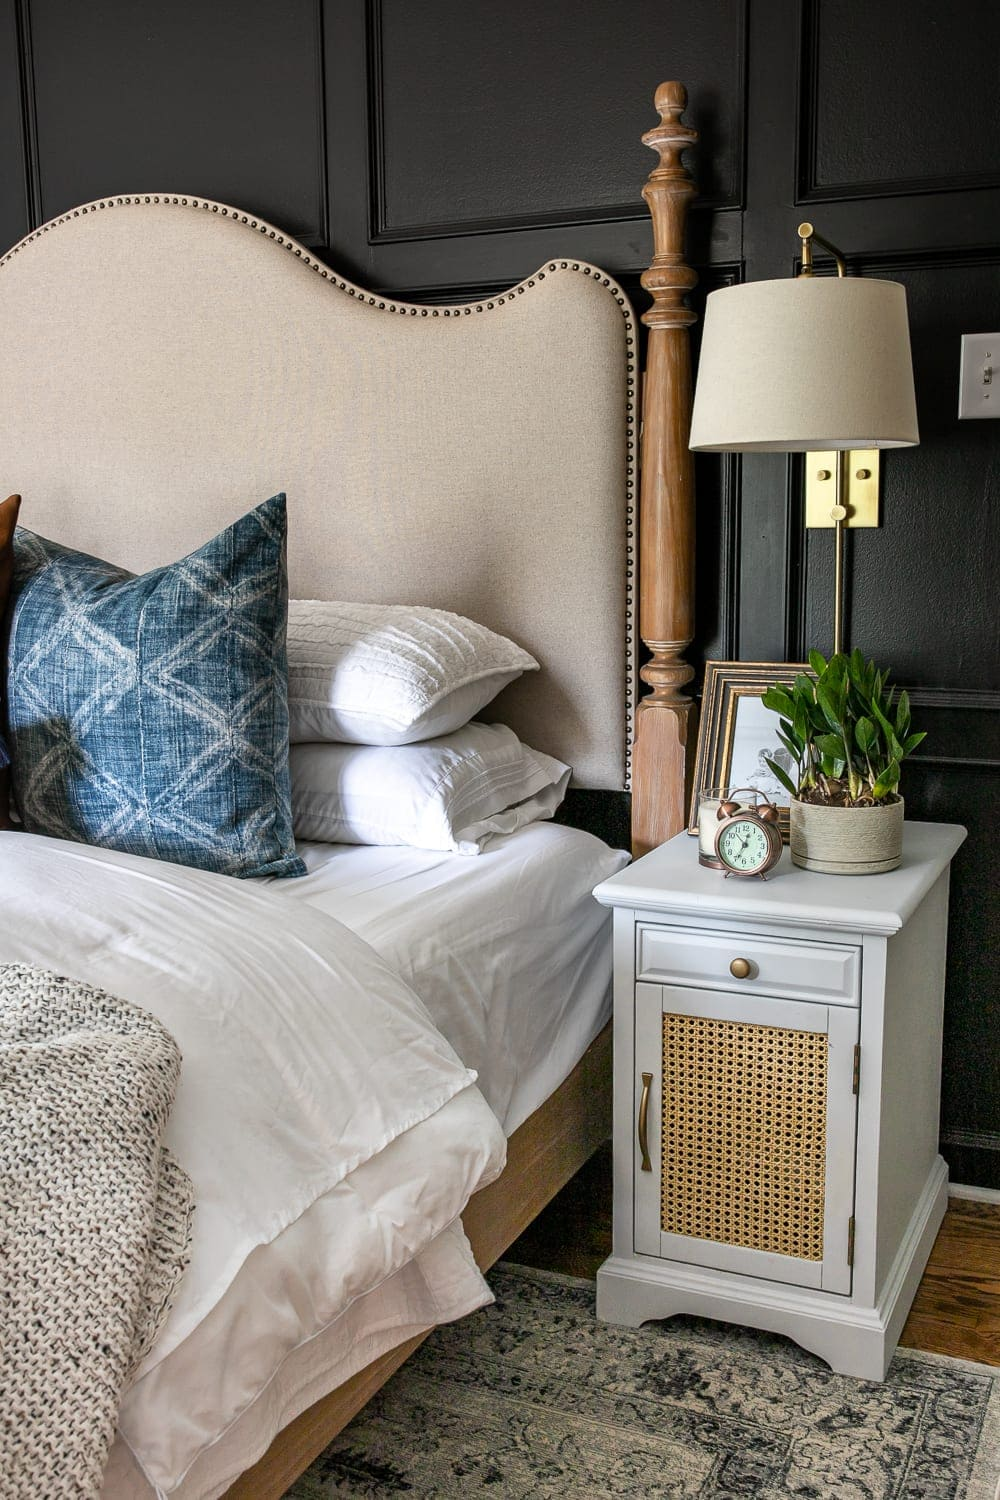 Nightstand Decor | 4 rules for nightstand decor to keep it pretty, functional, and clutter-free plus 4 nightstand decor ideas for all styles.